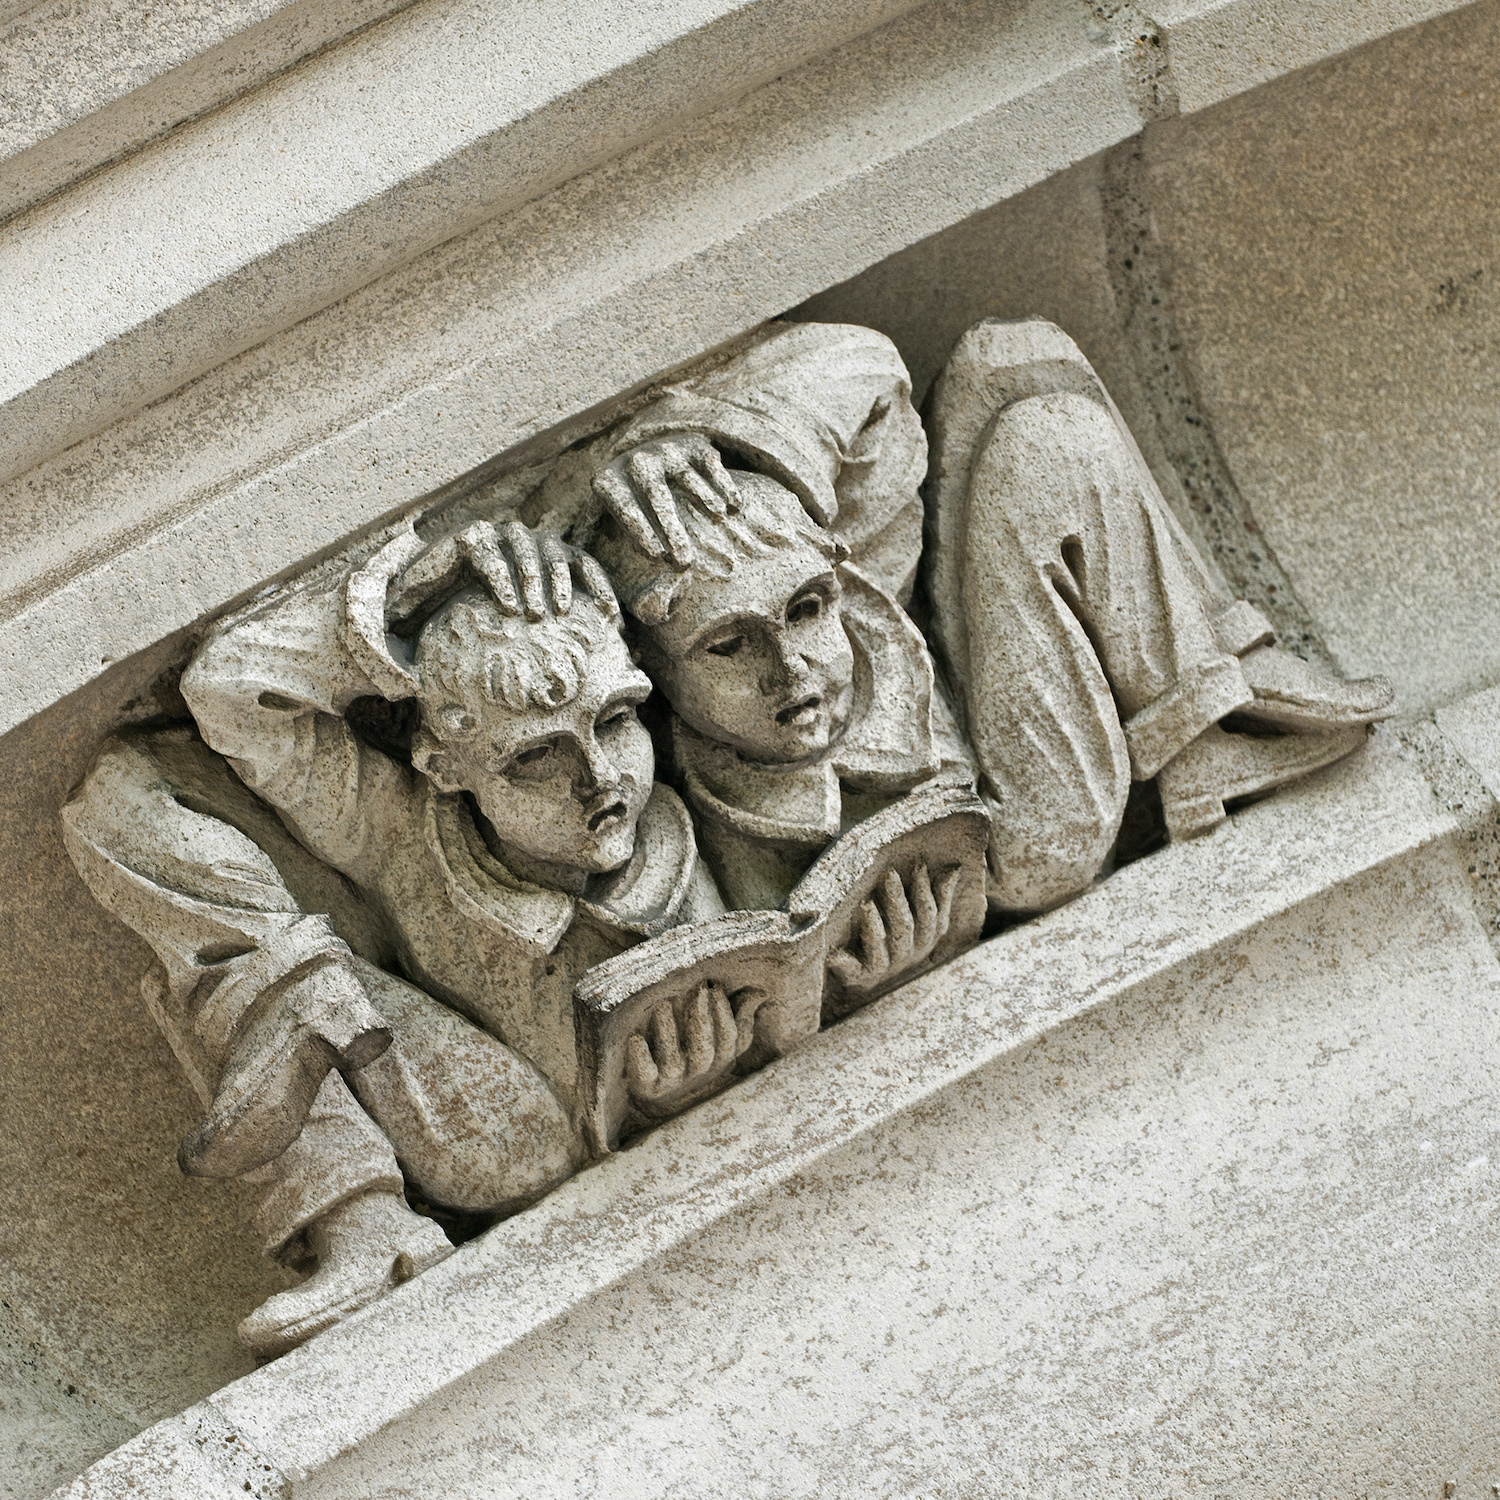 Detail of a whimsical gargoyle-like stonework figure of two students resting back to back while reading, and holding their heads in confusion.